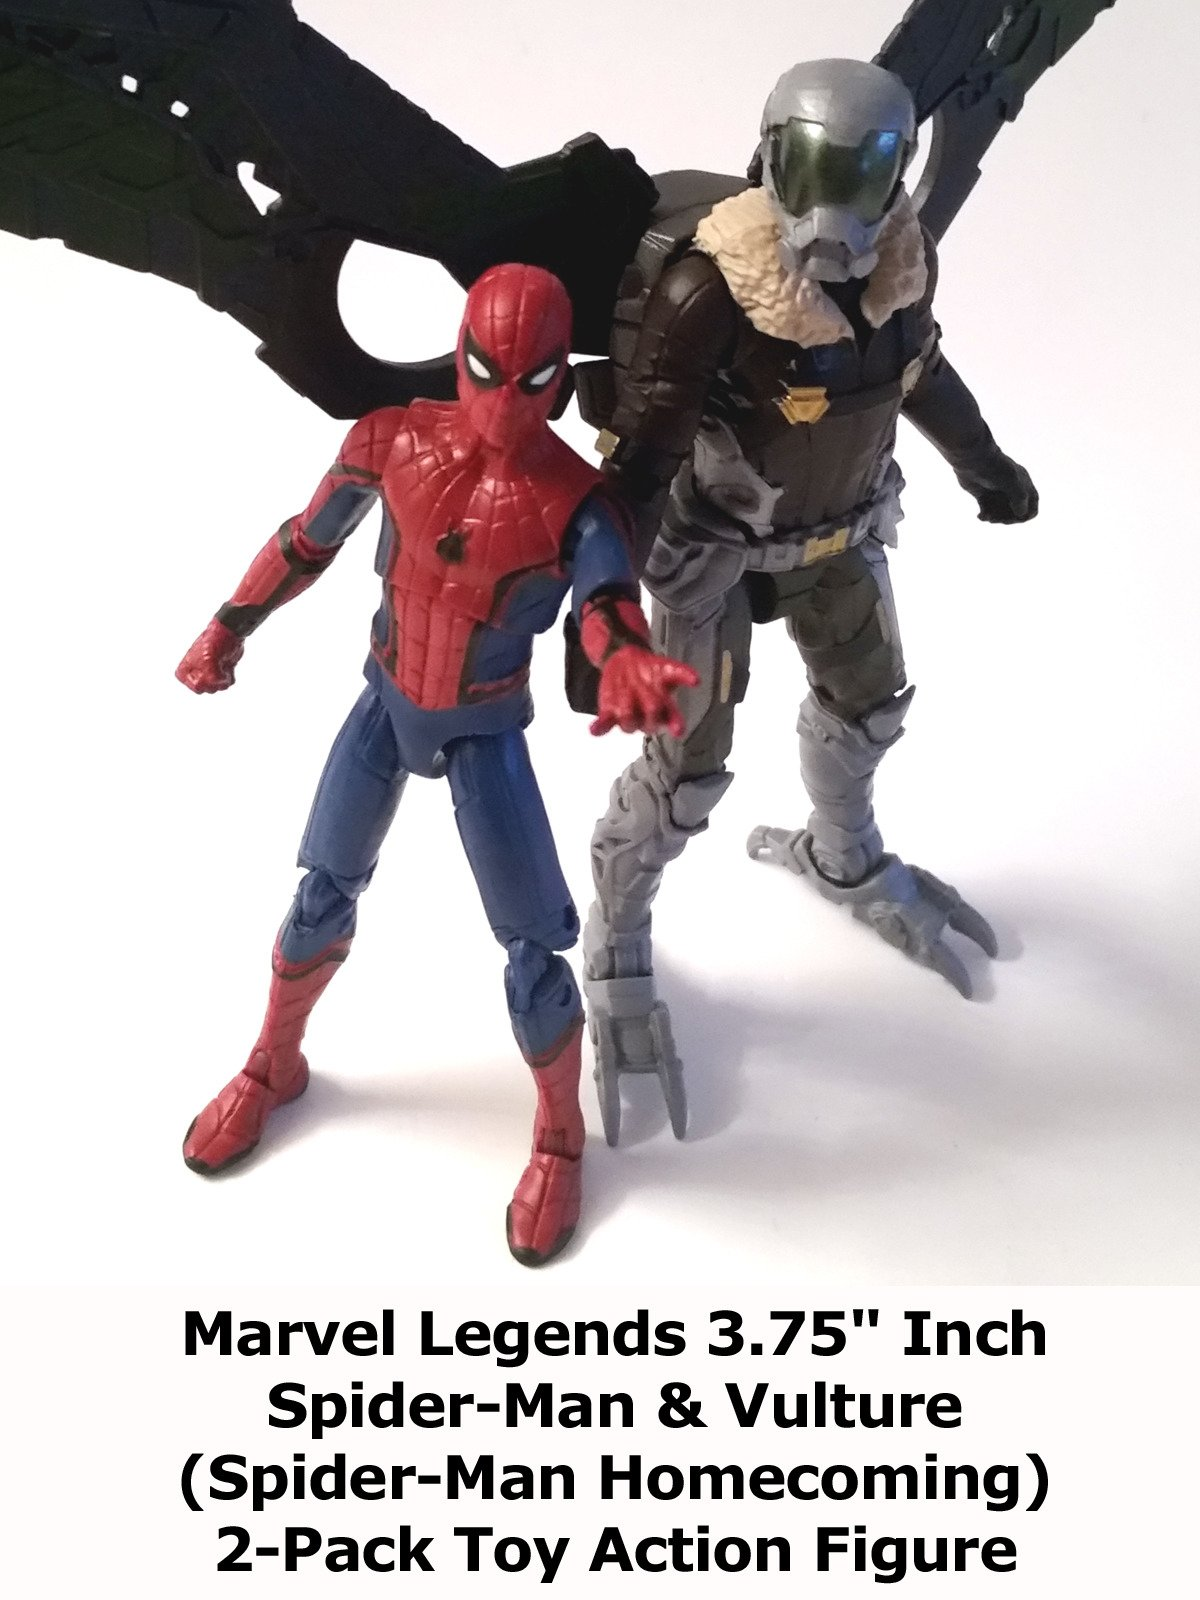 "Review: Marvel Legends 3.75"" Inch Spider-Man & Vulture (Spider-Man Homecoming) 2-Pack Toy Action Figure on Amazon Prime Video UK"